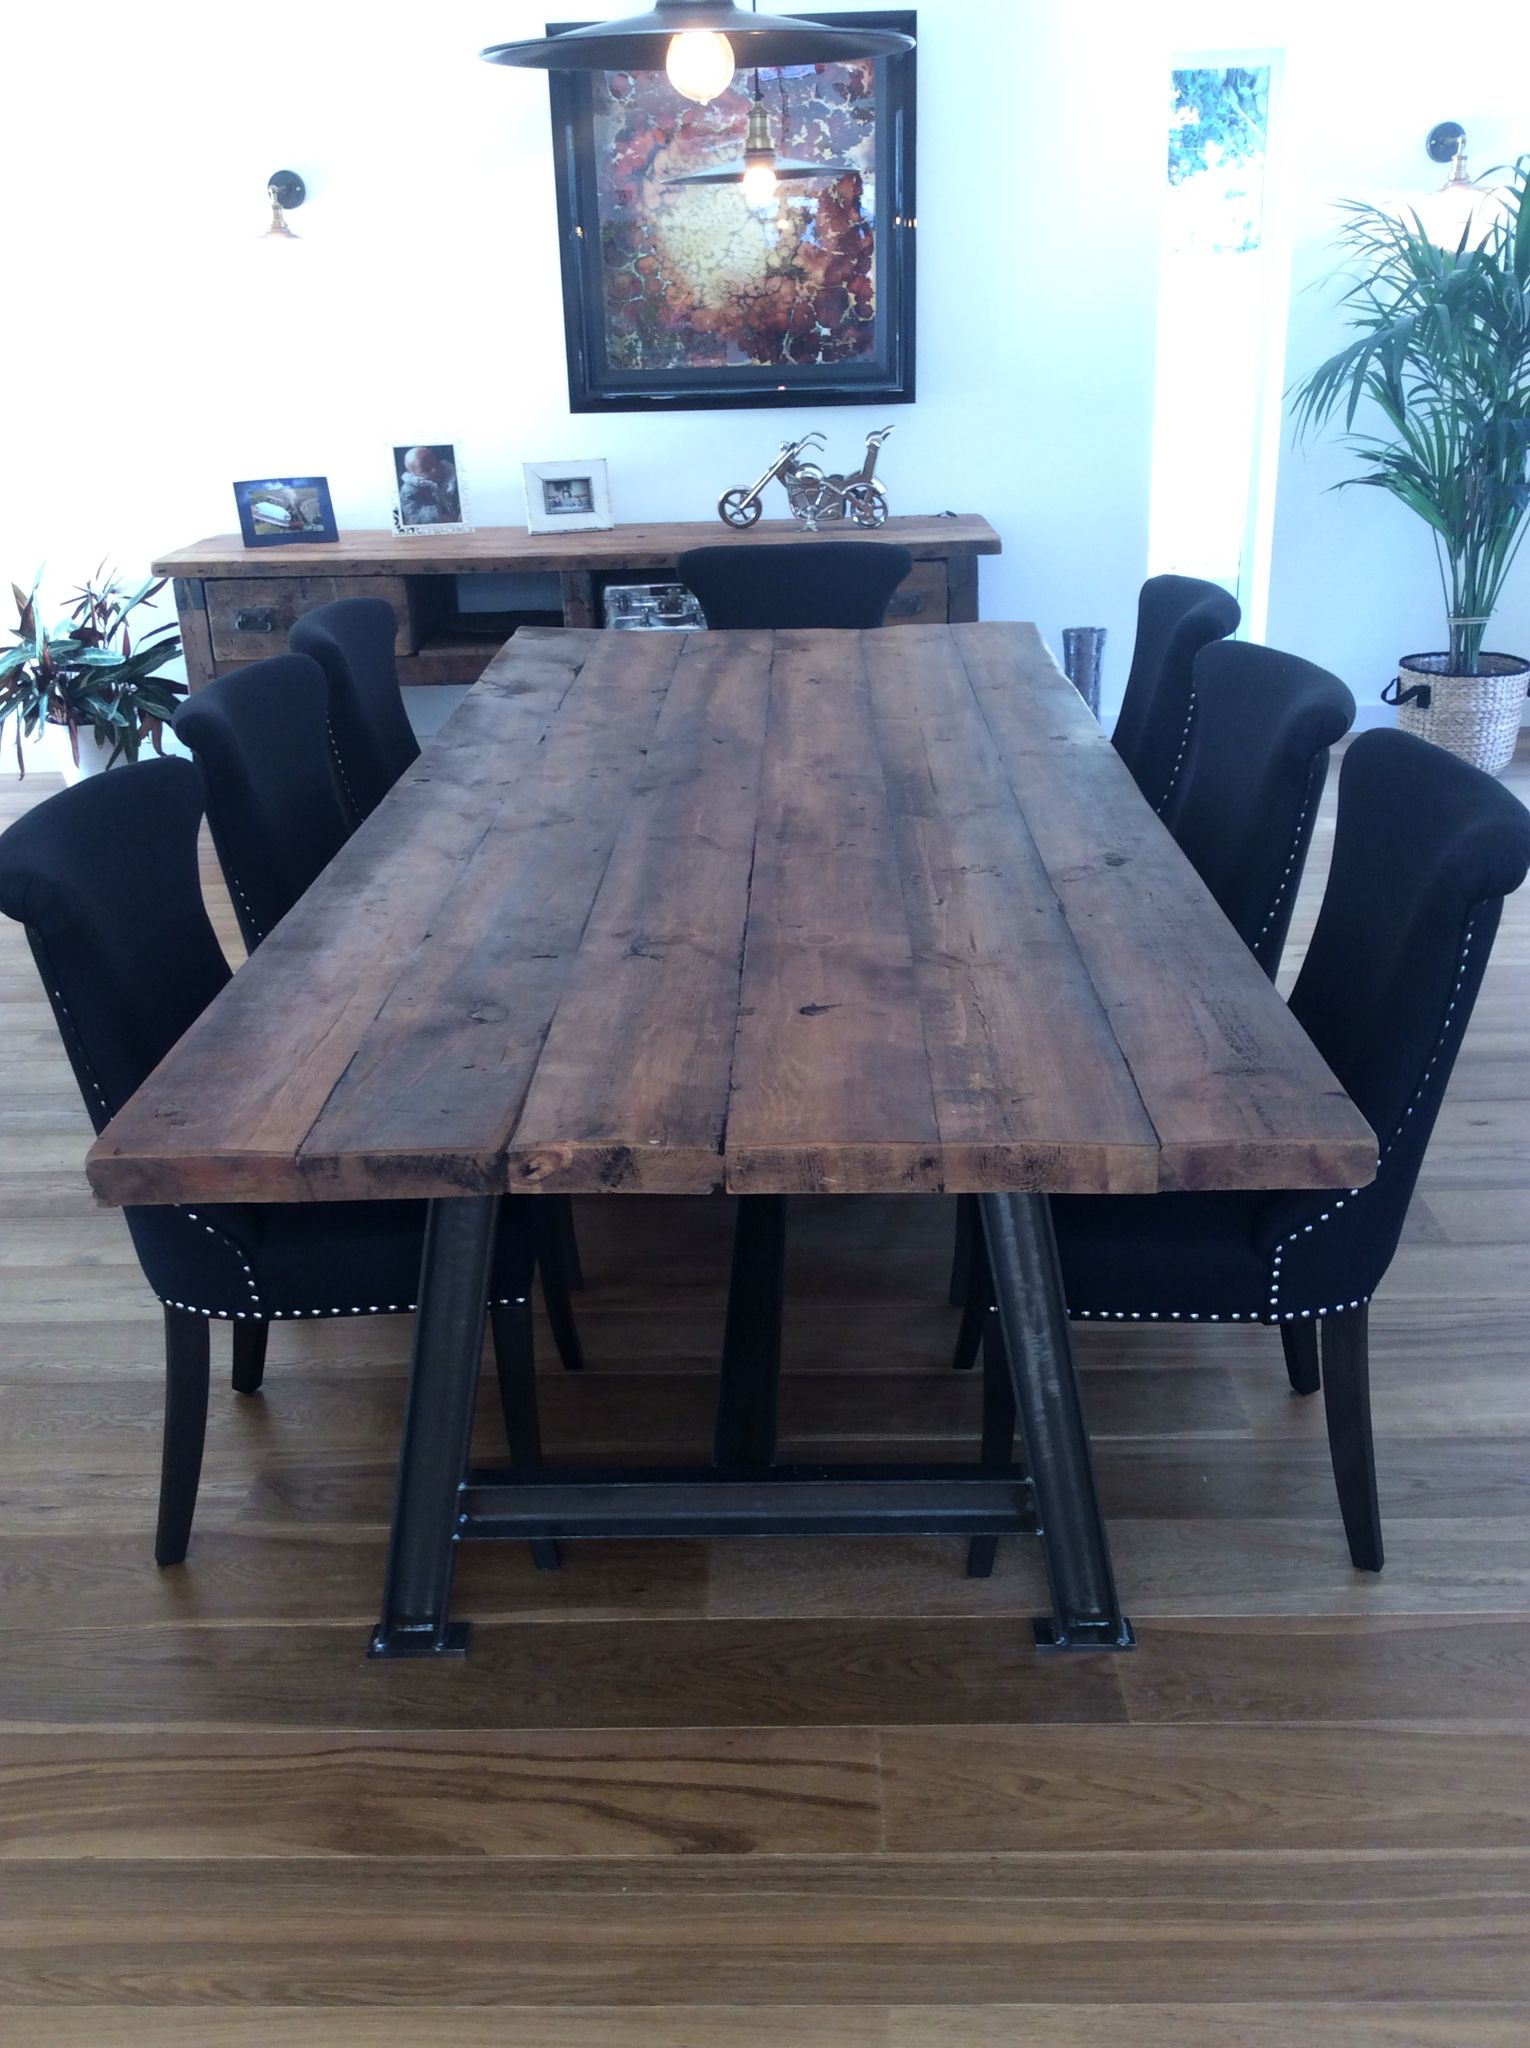 Reclaimed kitchen table  Industrial style steel Aframed table with reclaimed timber top